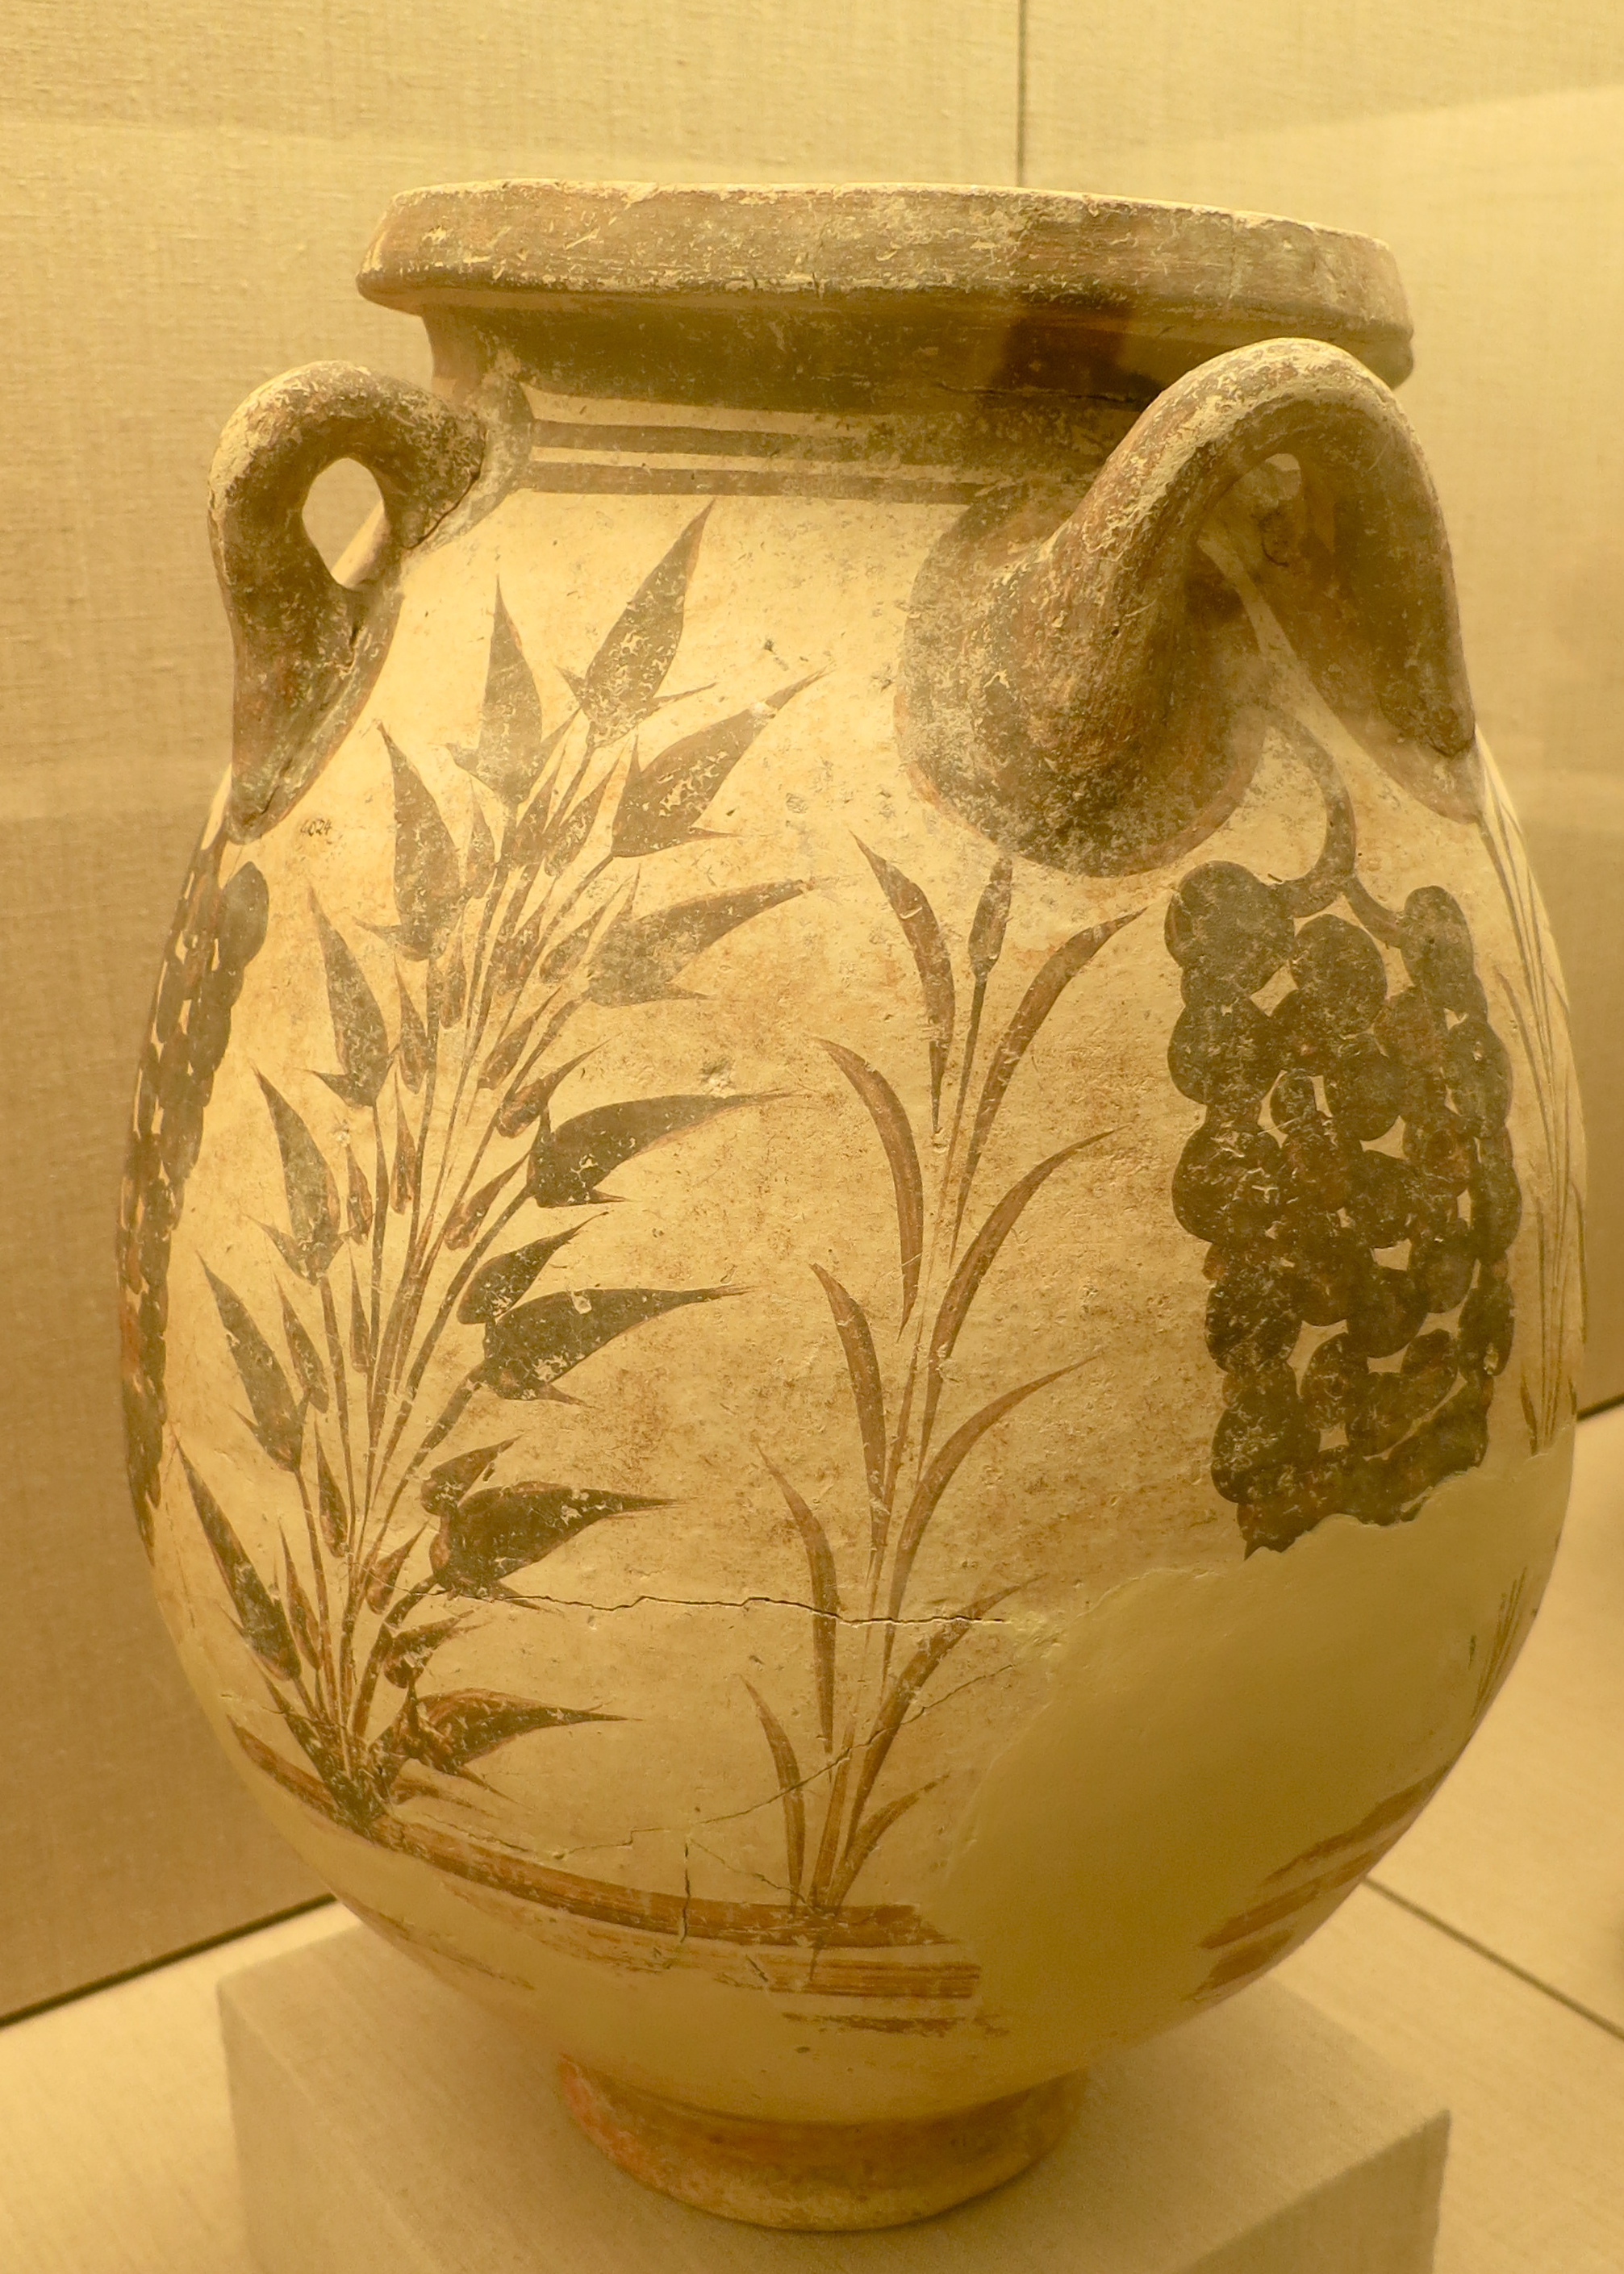 Much of the pottery found in Akrotiri also featured common crops grown by the Minoans. The grapes reflect the wine industry that has been in existence on Santorini for over 4000 years.